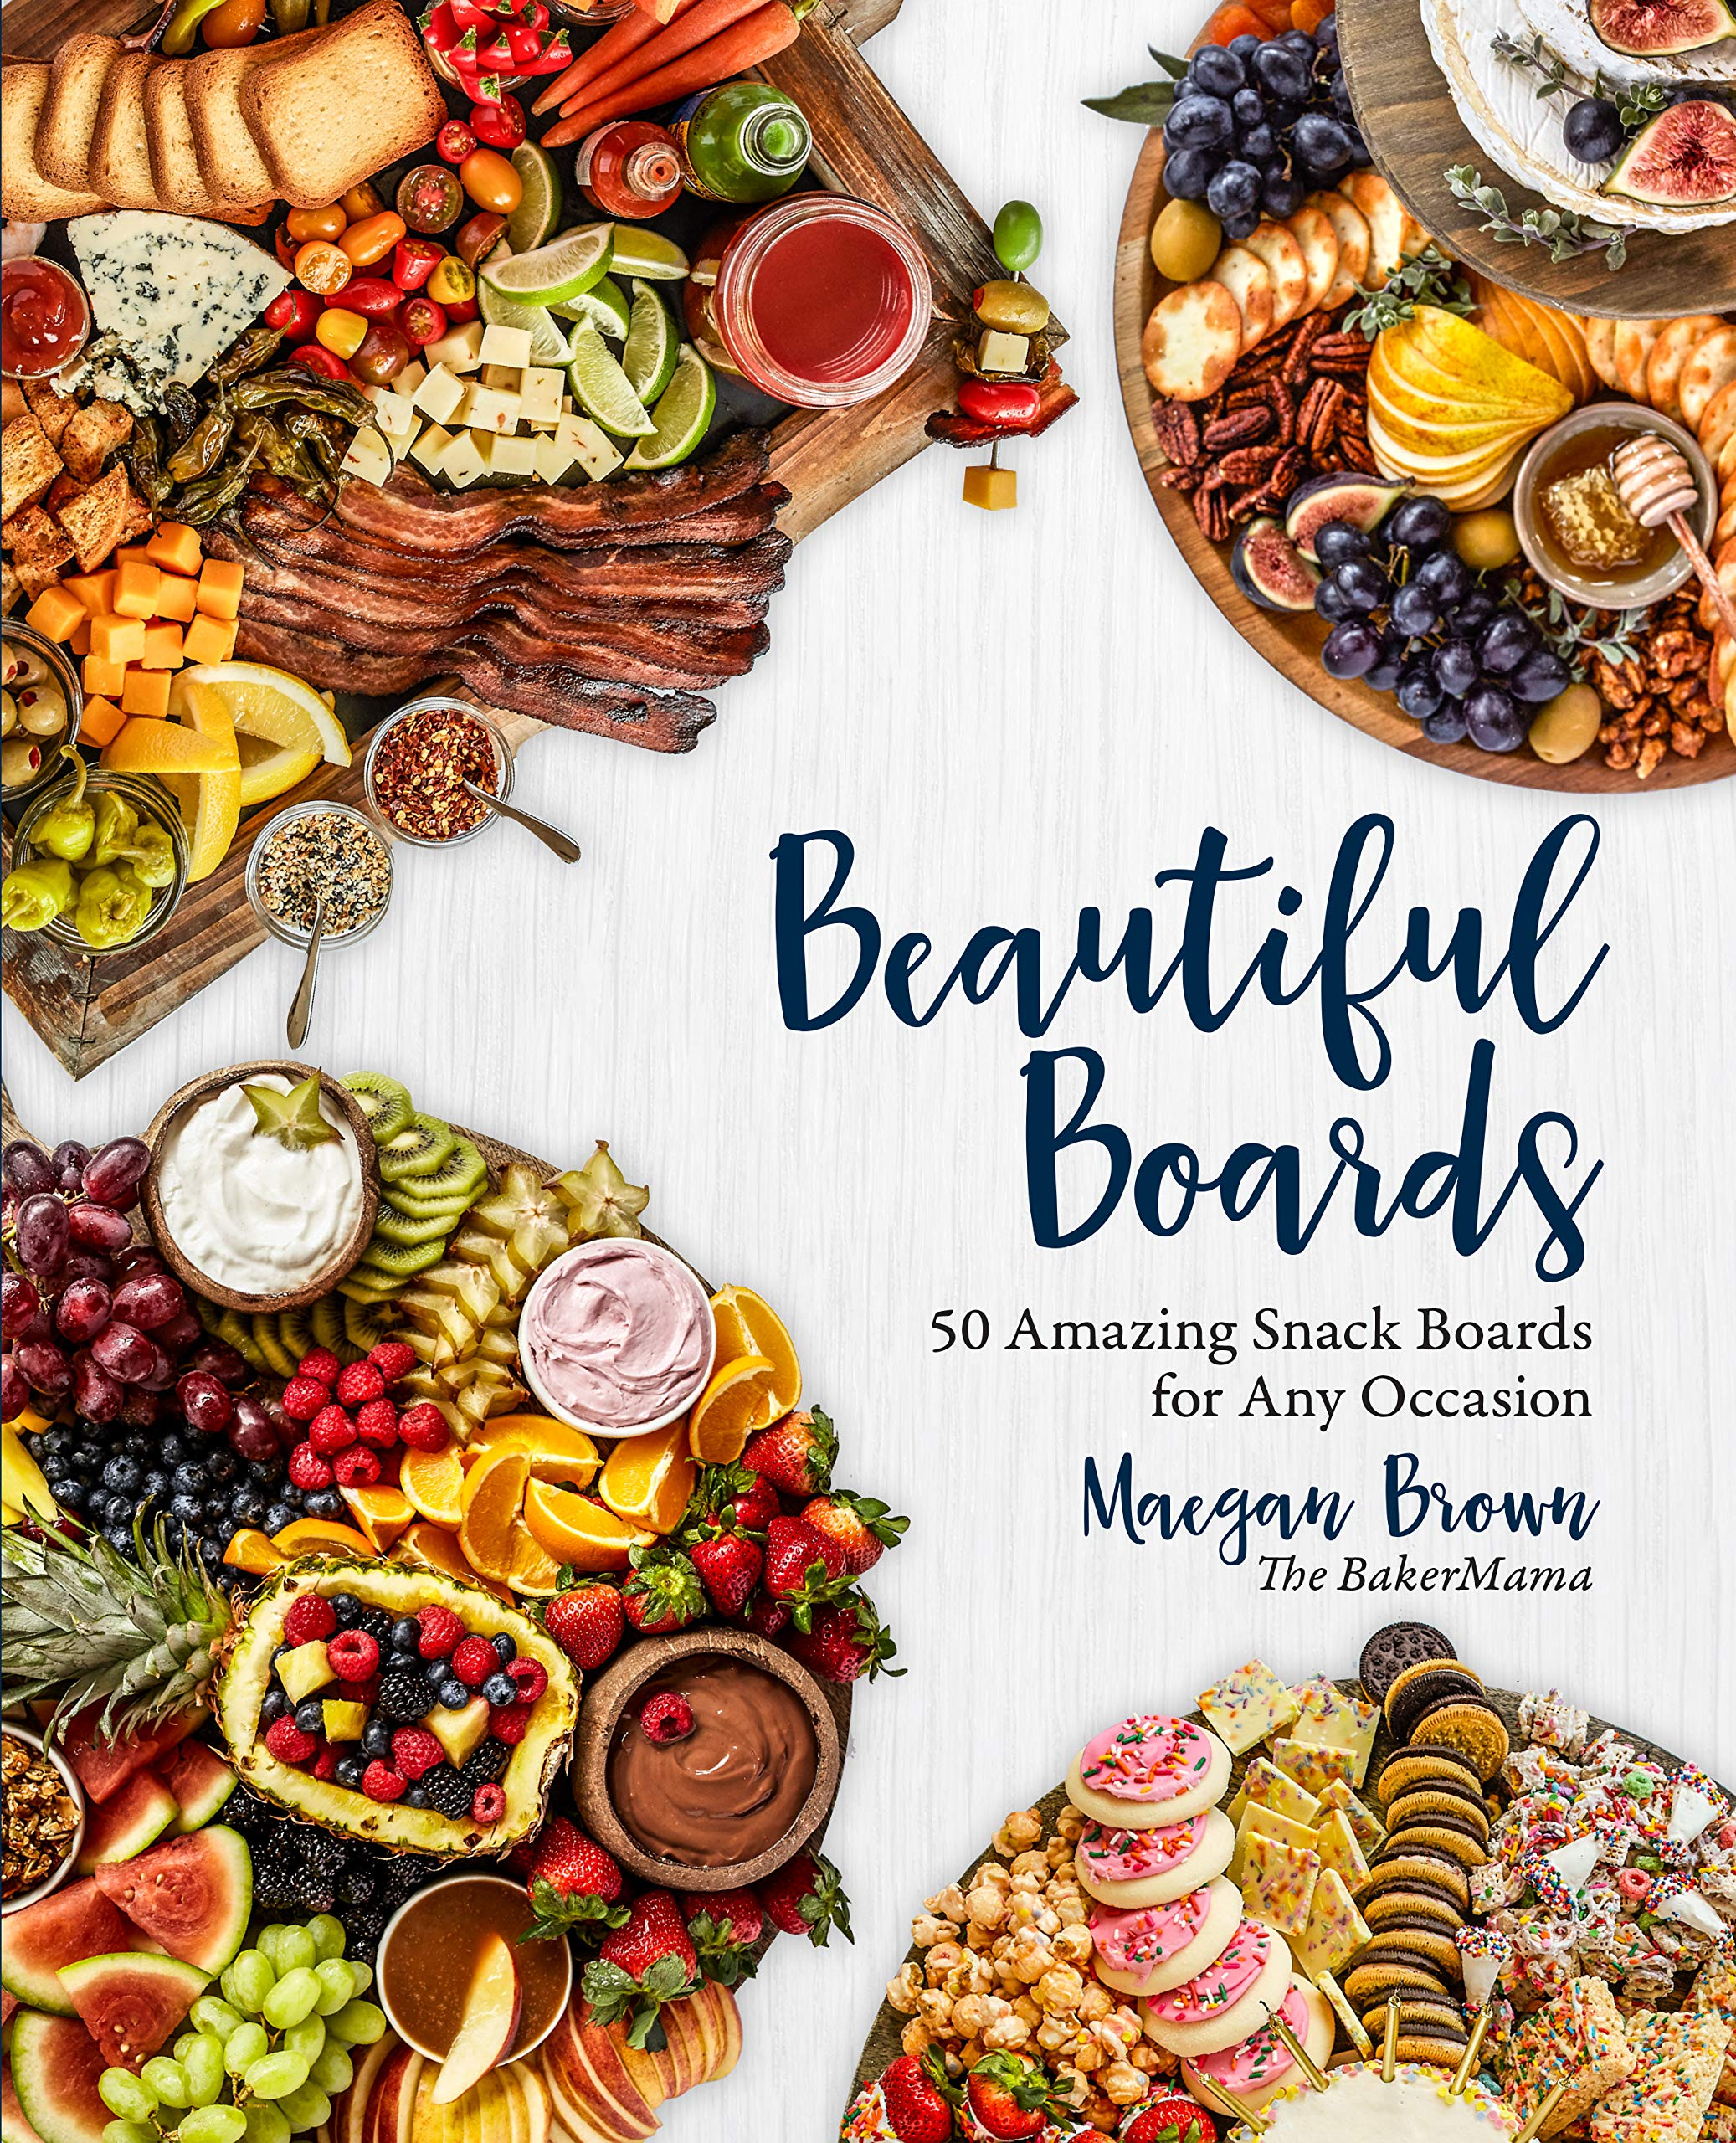 Beautiful Boards Amazing Snack Occasion product image